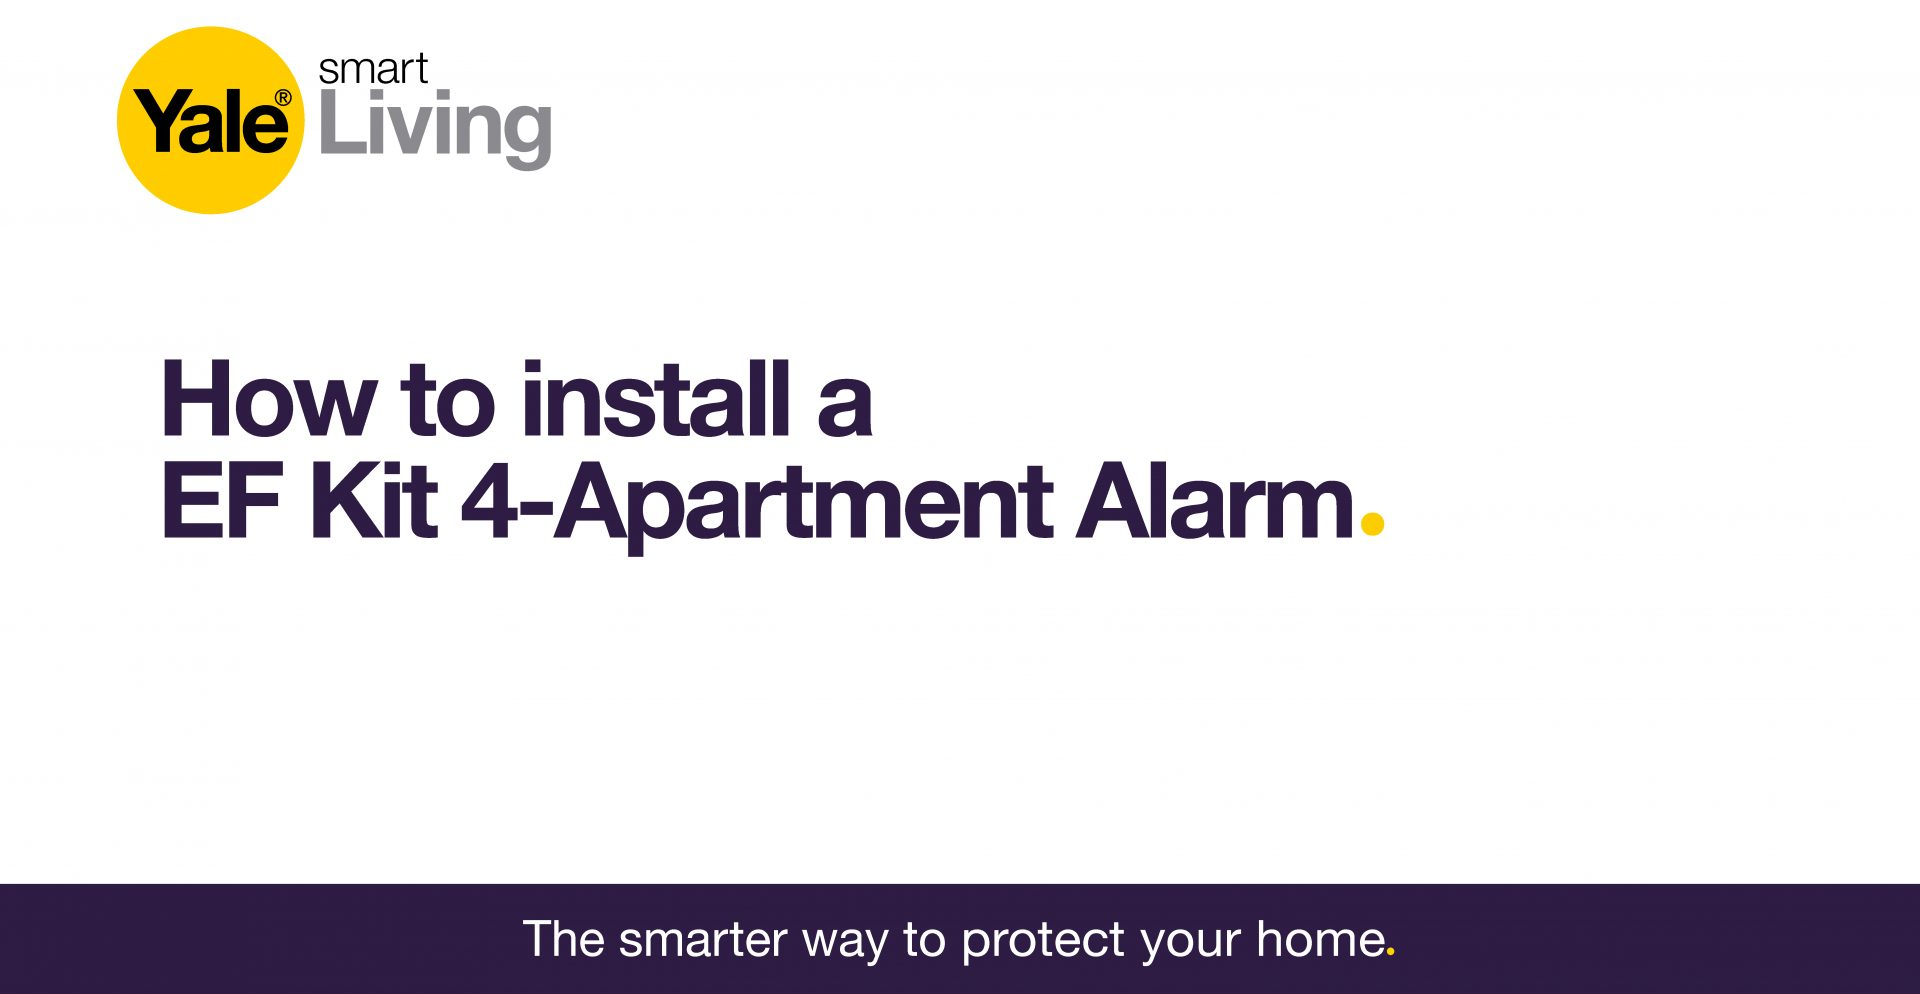 Image linking to video showing how to install an EF Kit 4 Apartment Alarm.